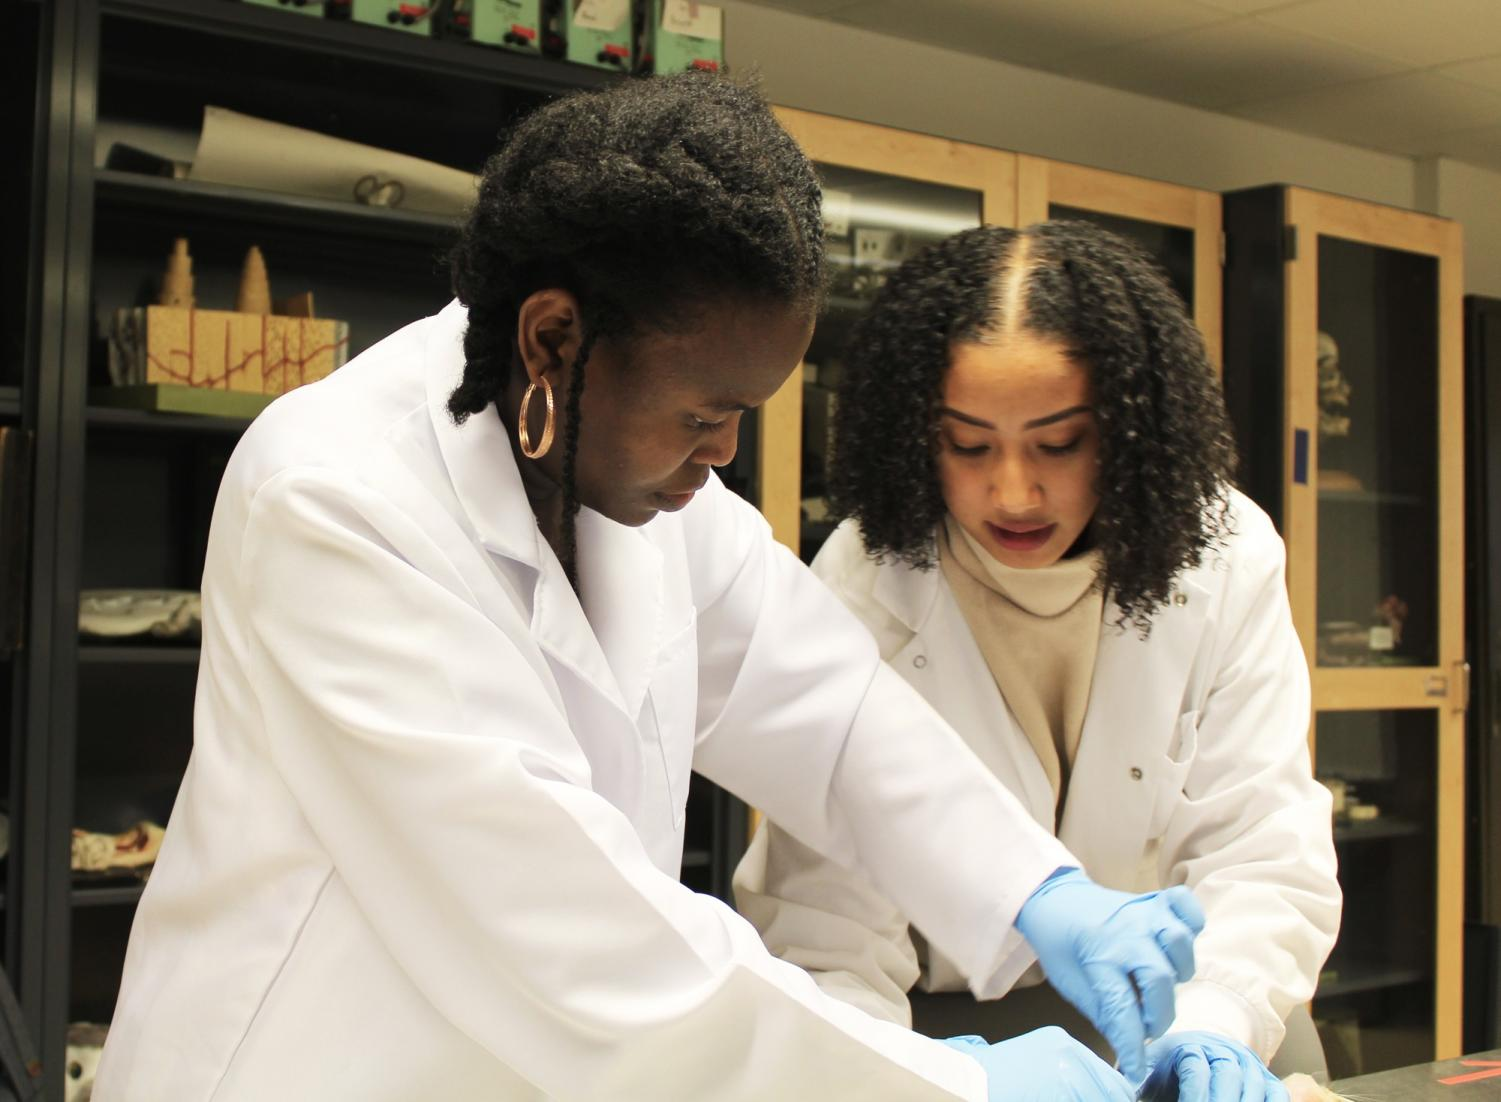 Glory 'Tomi' John and Alexys Wright work in a lab together on Jan.10. The two worked together to start a new chapter of the Minority Association for Pre-Medicine Students at Loyola. Photo credit: Rae Walberg